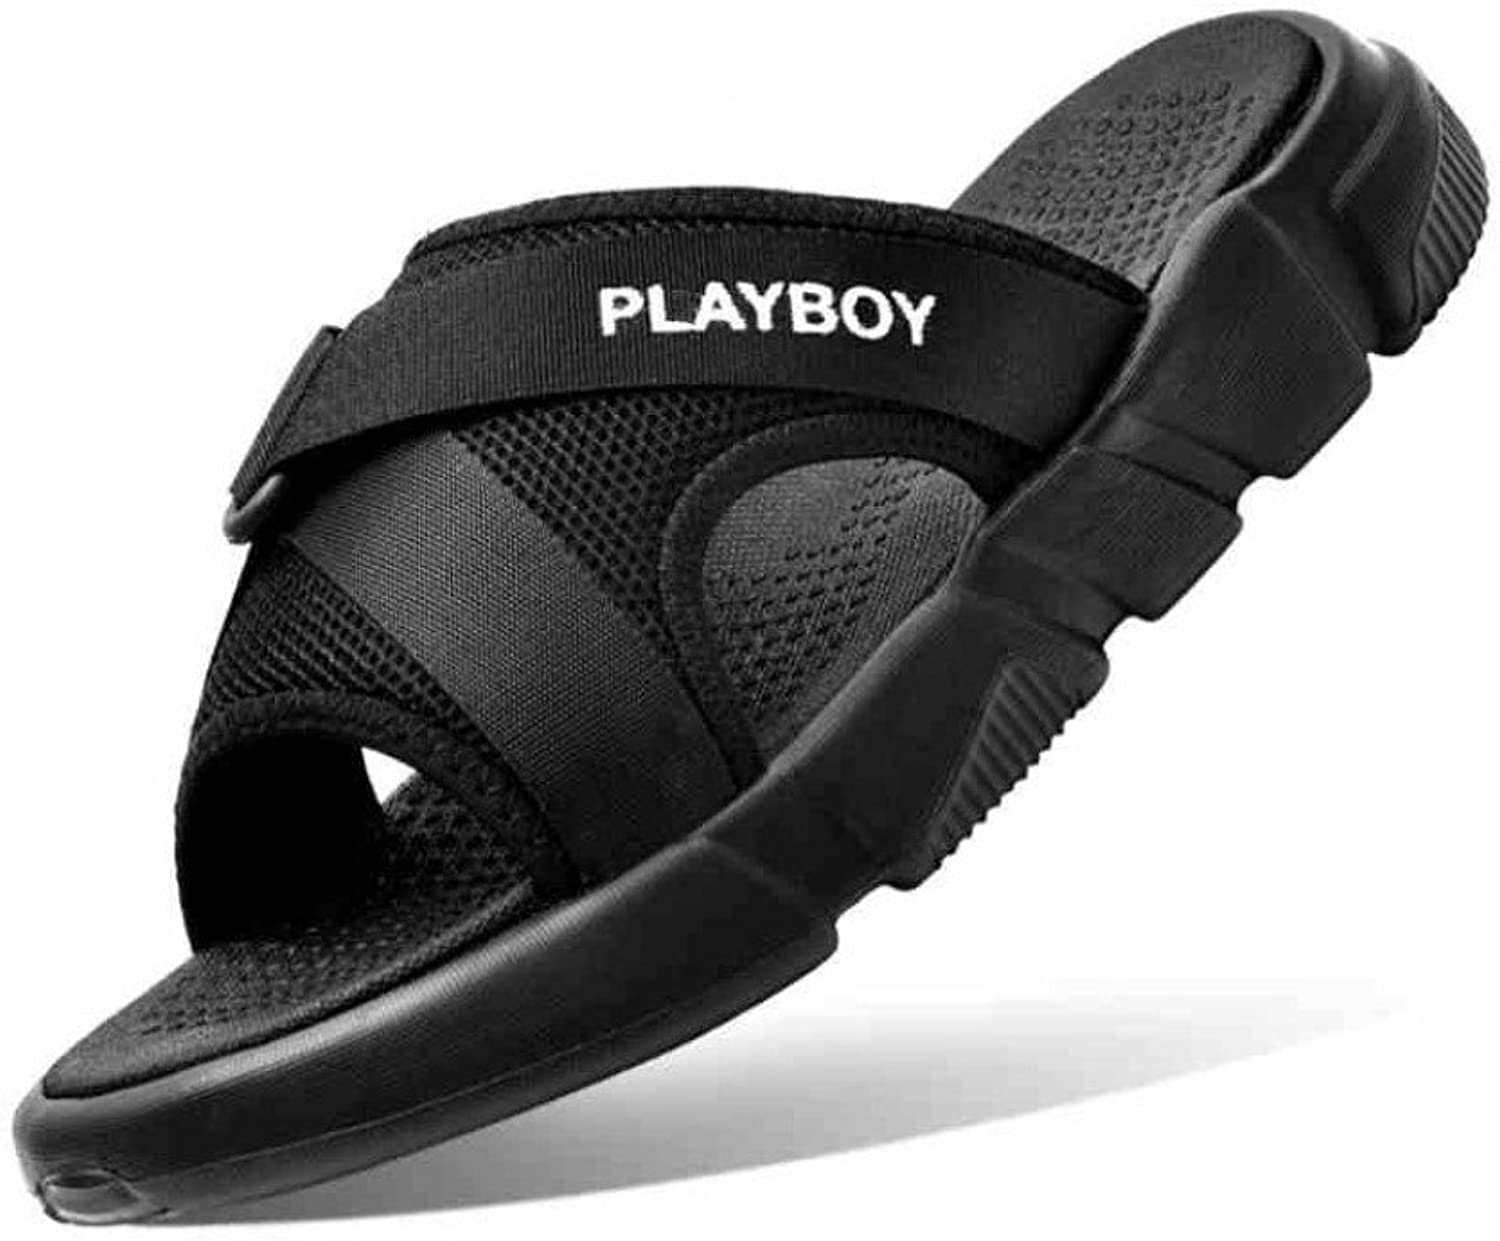 CHENGXIAOXUAN Men's Slippers Flip-Flops Korean Thick Sole Non-Slip Outdoor Sandals Boy Casual Sandals Cross Strap Slip Sandals